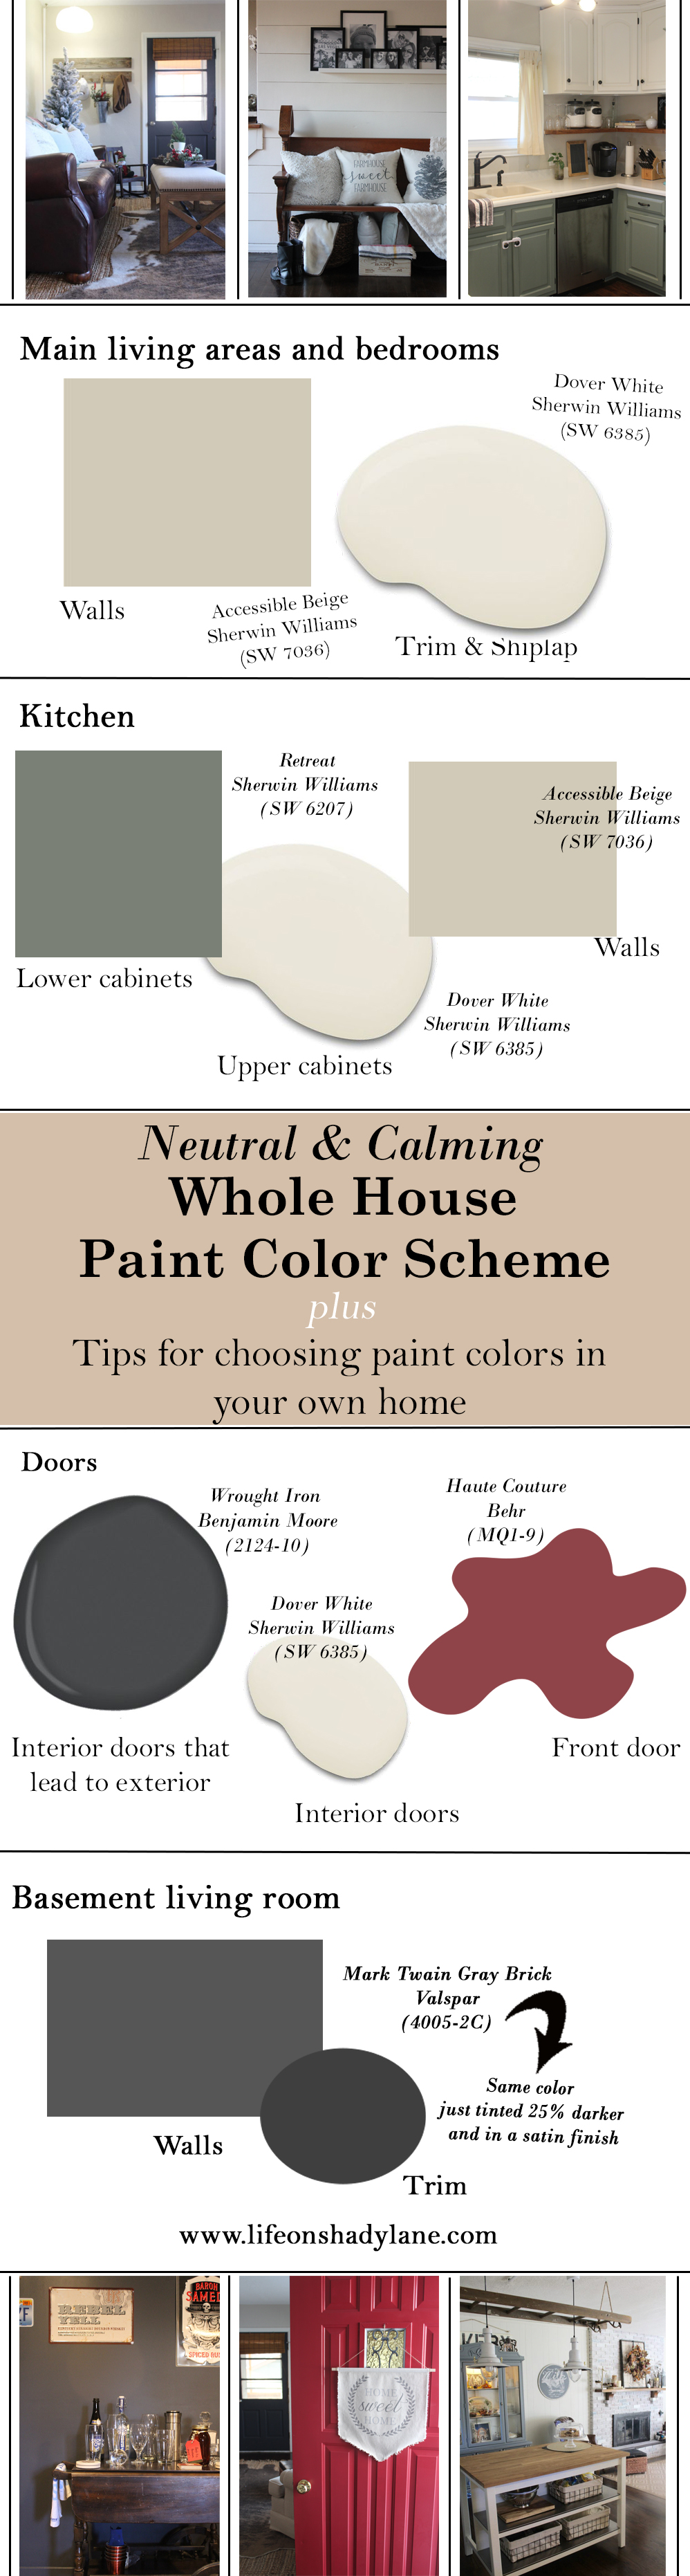 Neutral And Calming Whole House Paint Color Scheme Tips For Choosing Colors In Your